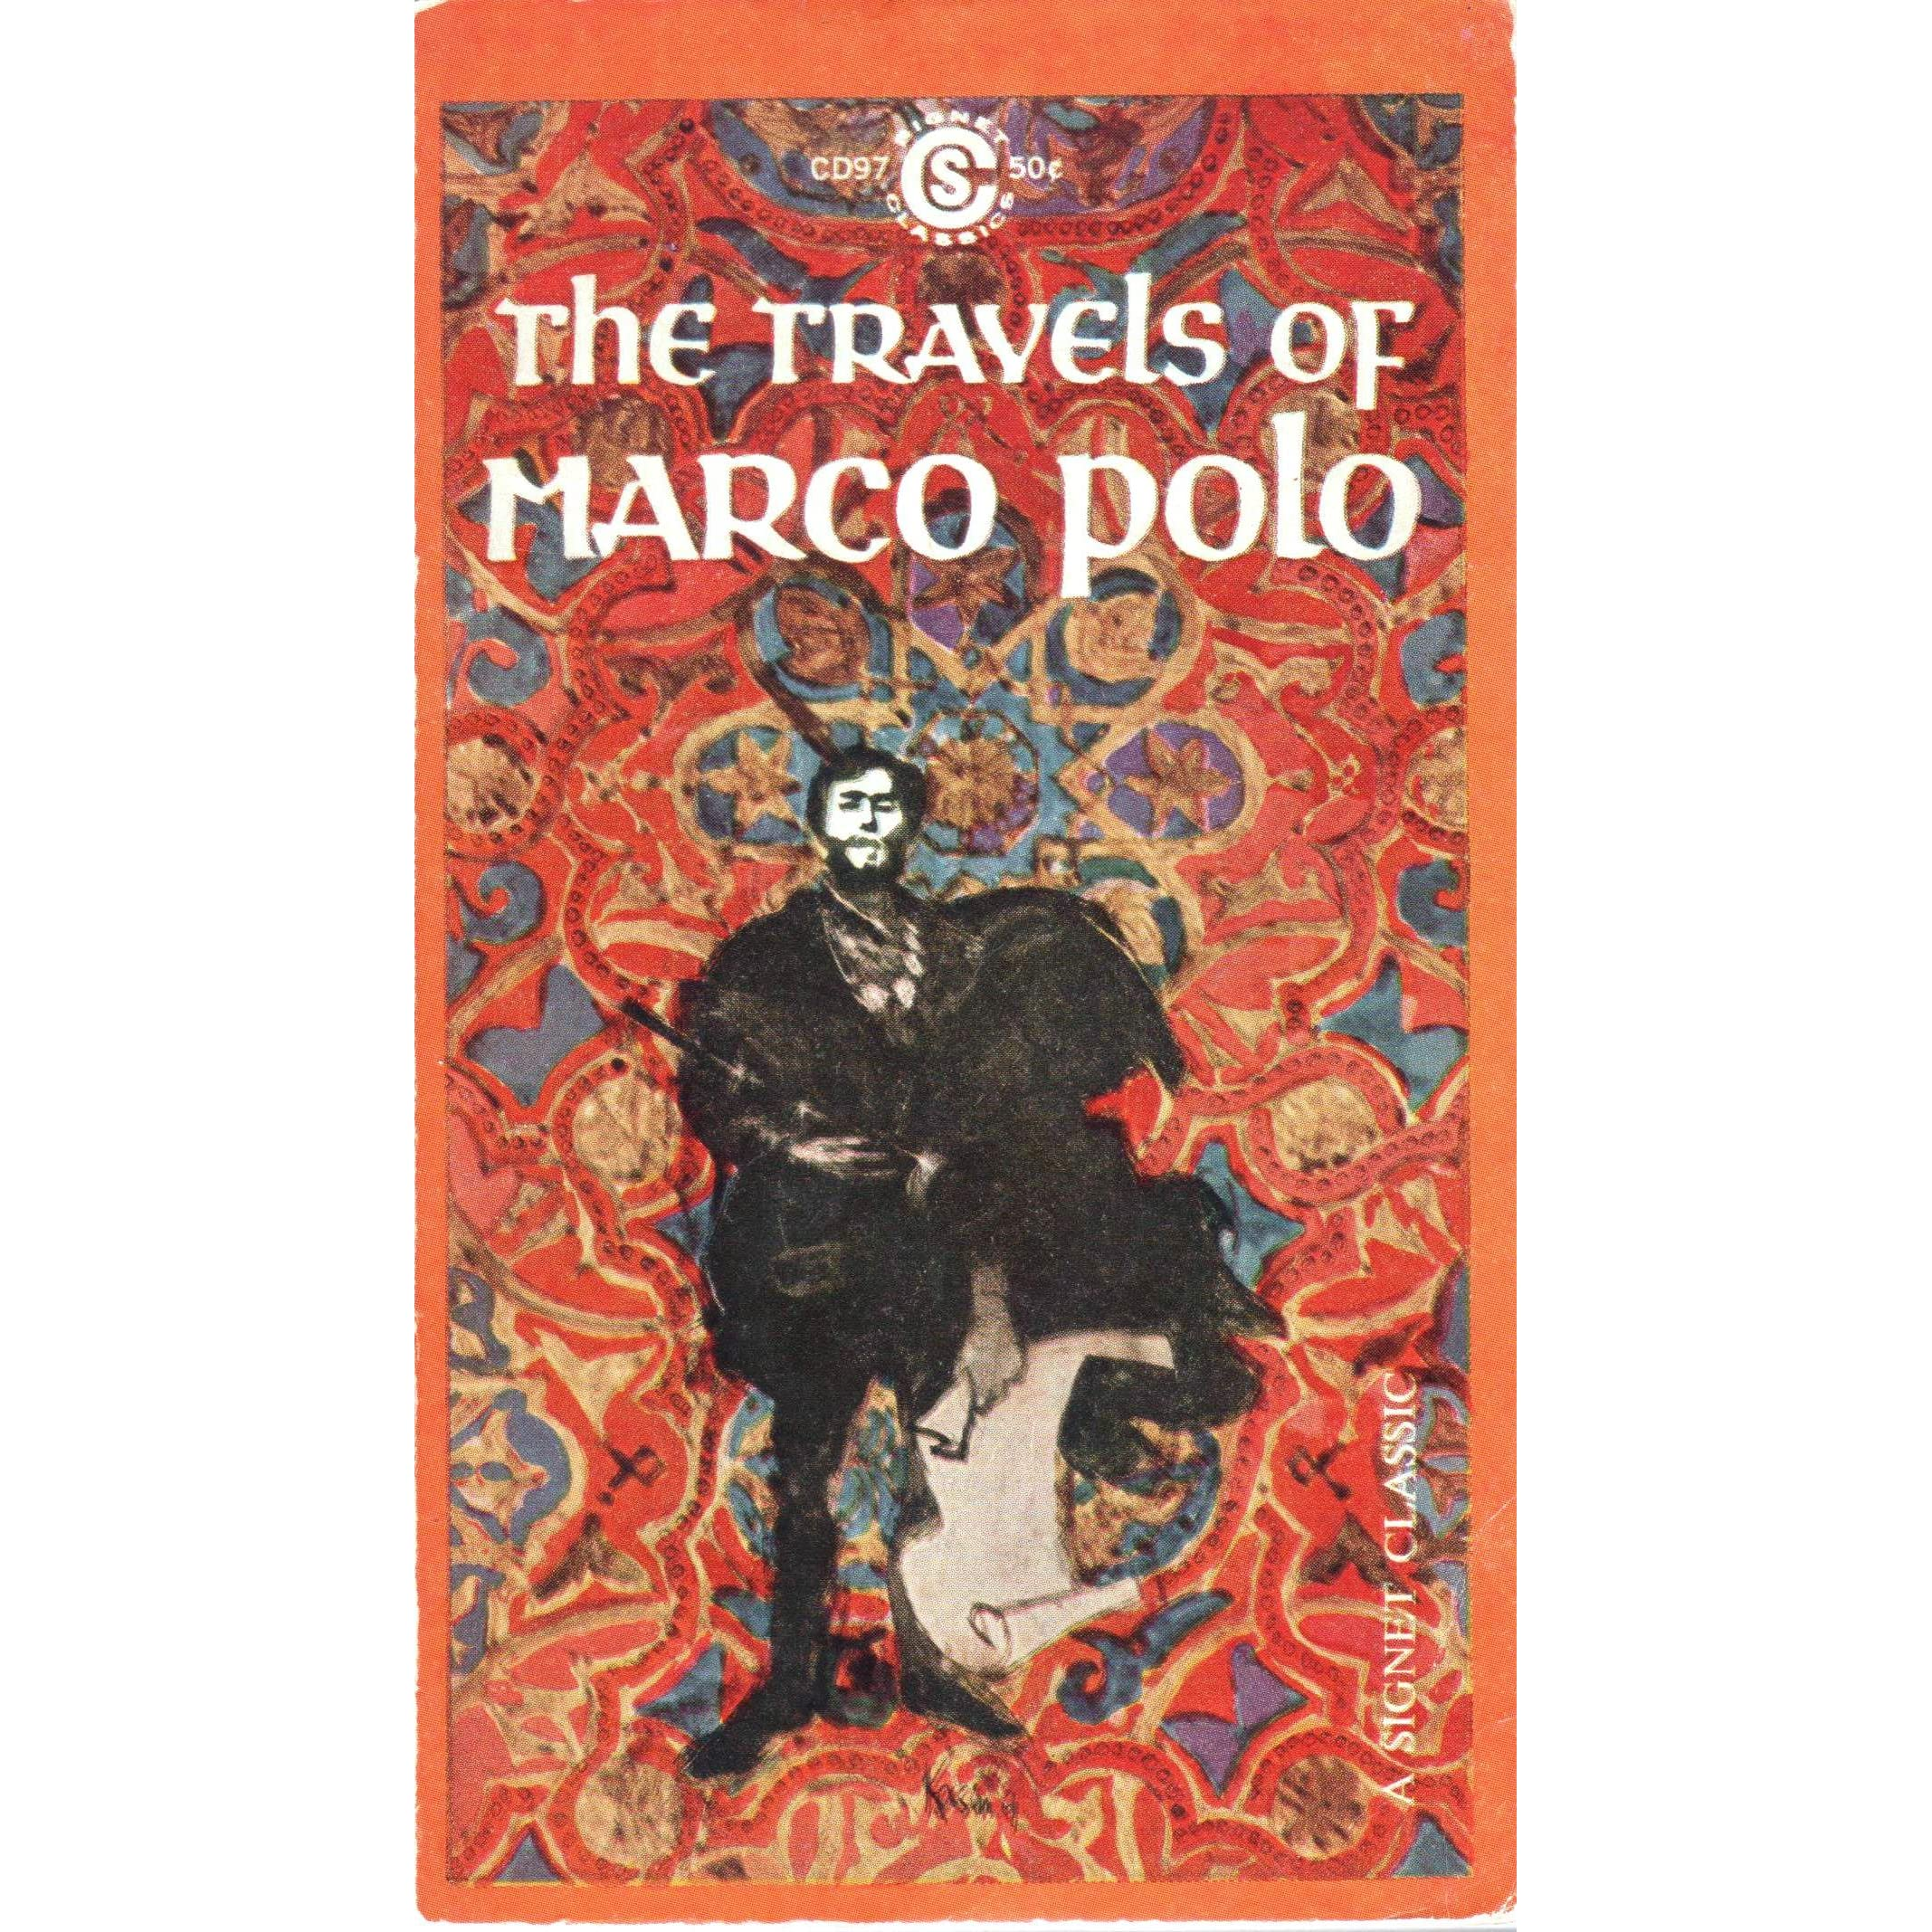 a look at the infamous travek of marco polo